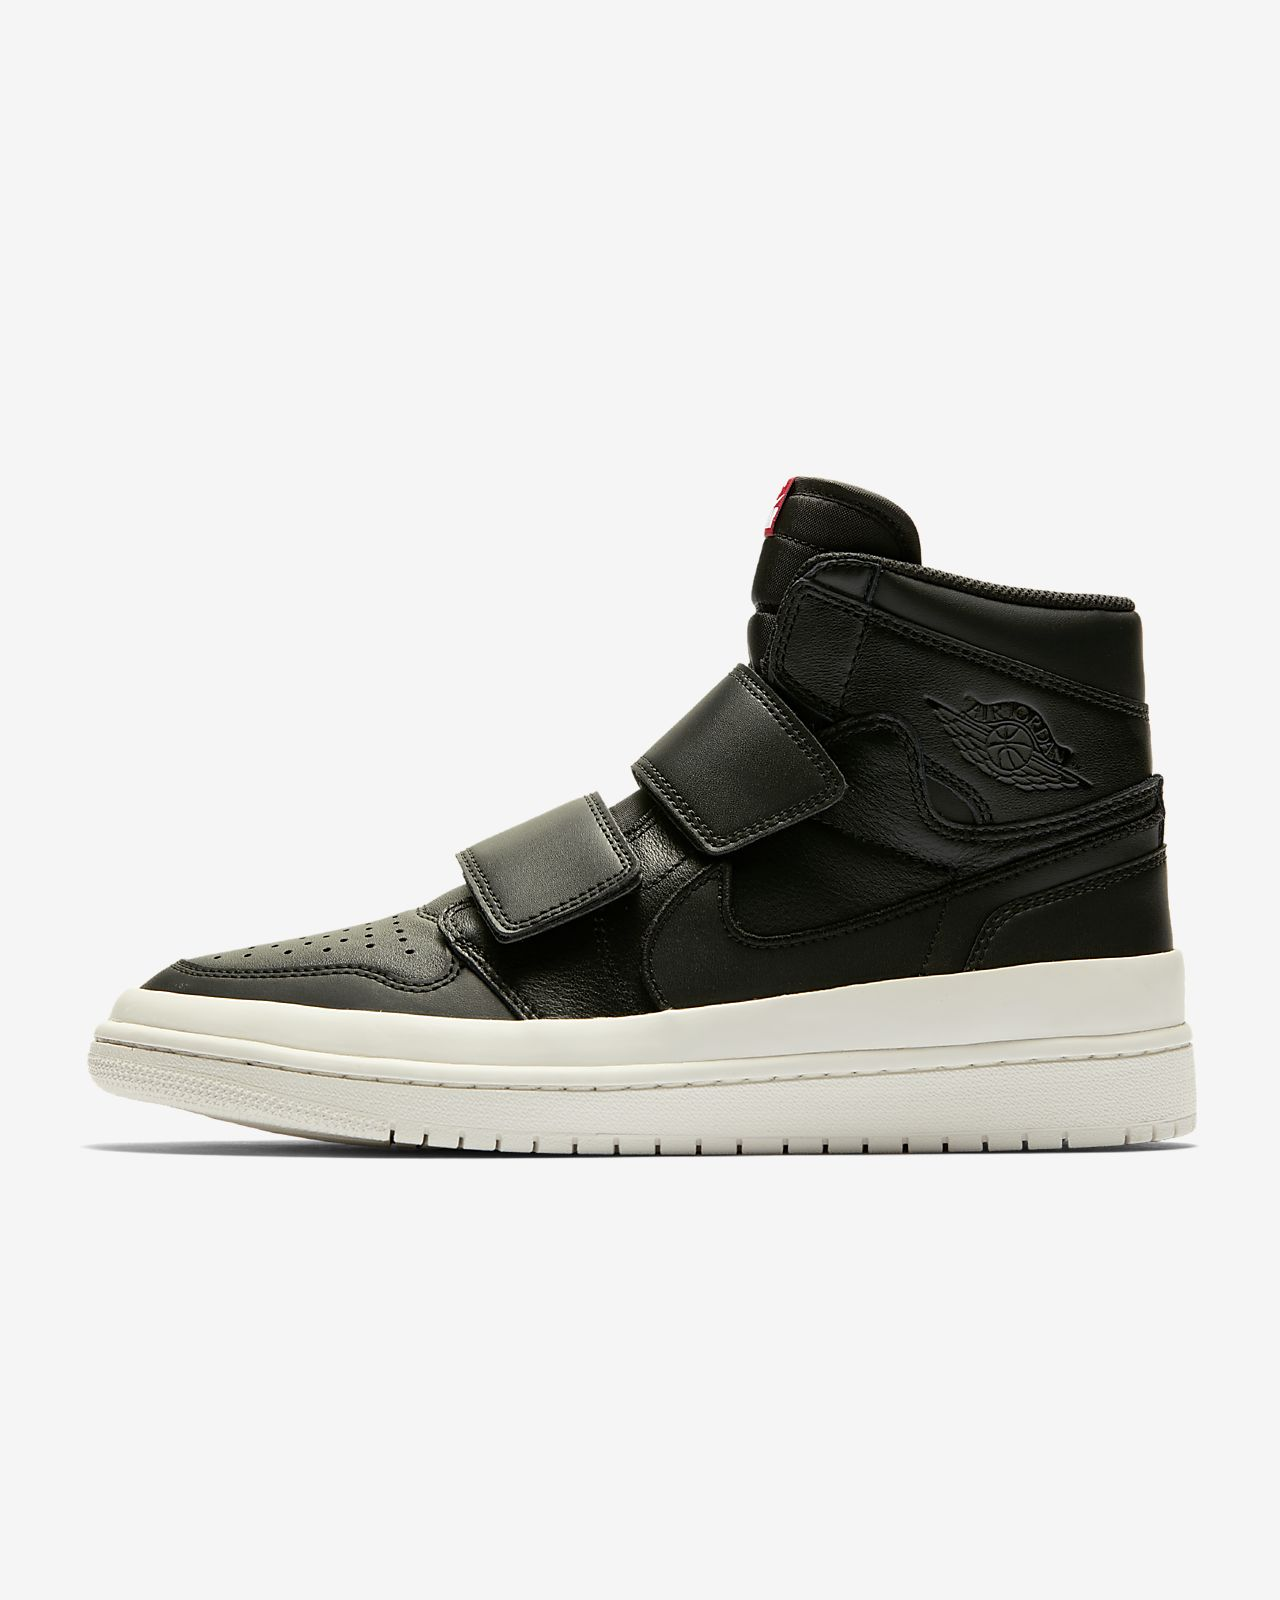 best sneakers 668bf 23464 Chaussure Air Jordan 1 Retro High Double Strap pour Homme. Nike.com BE